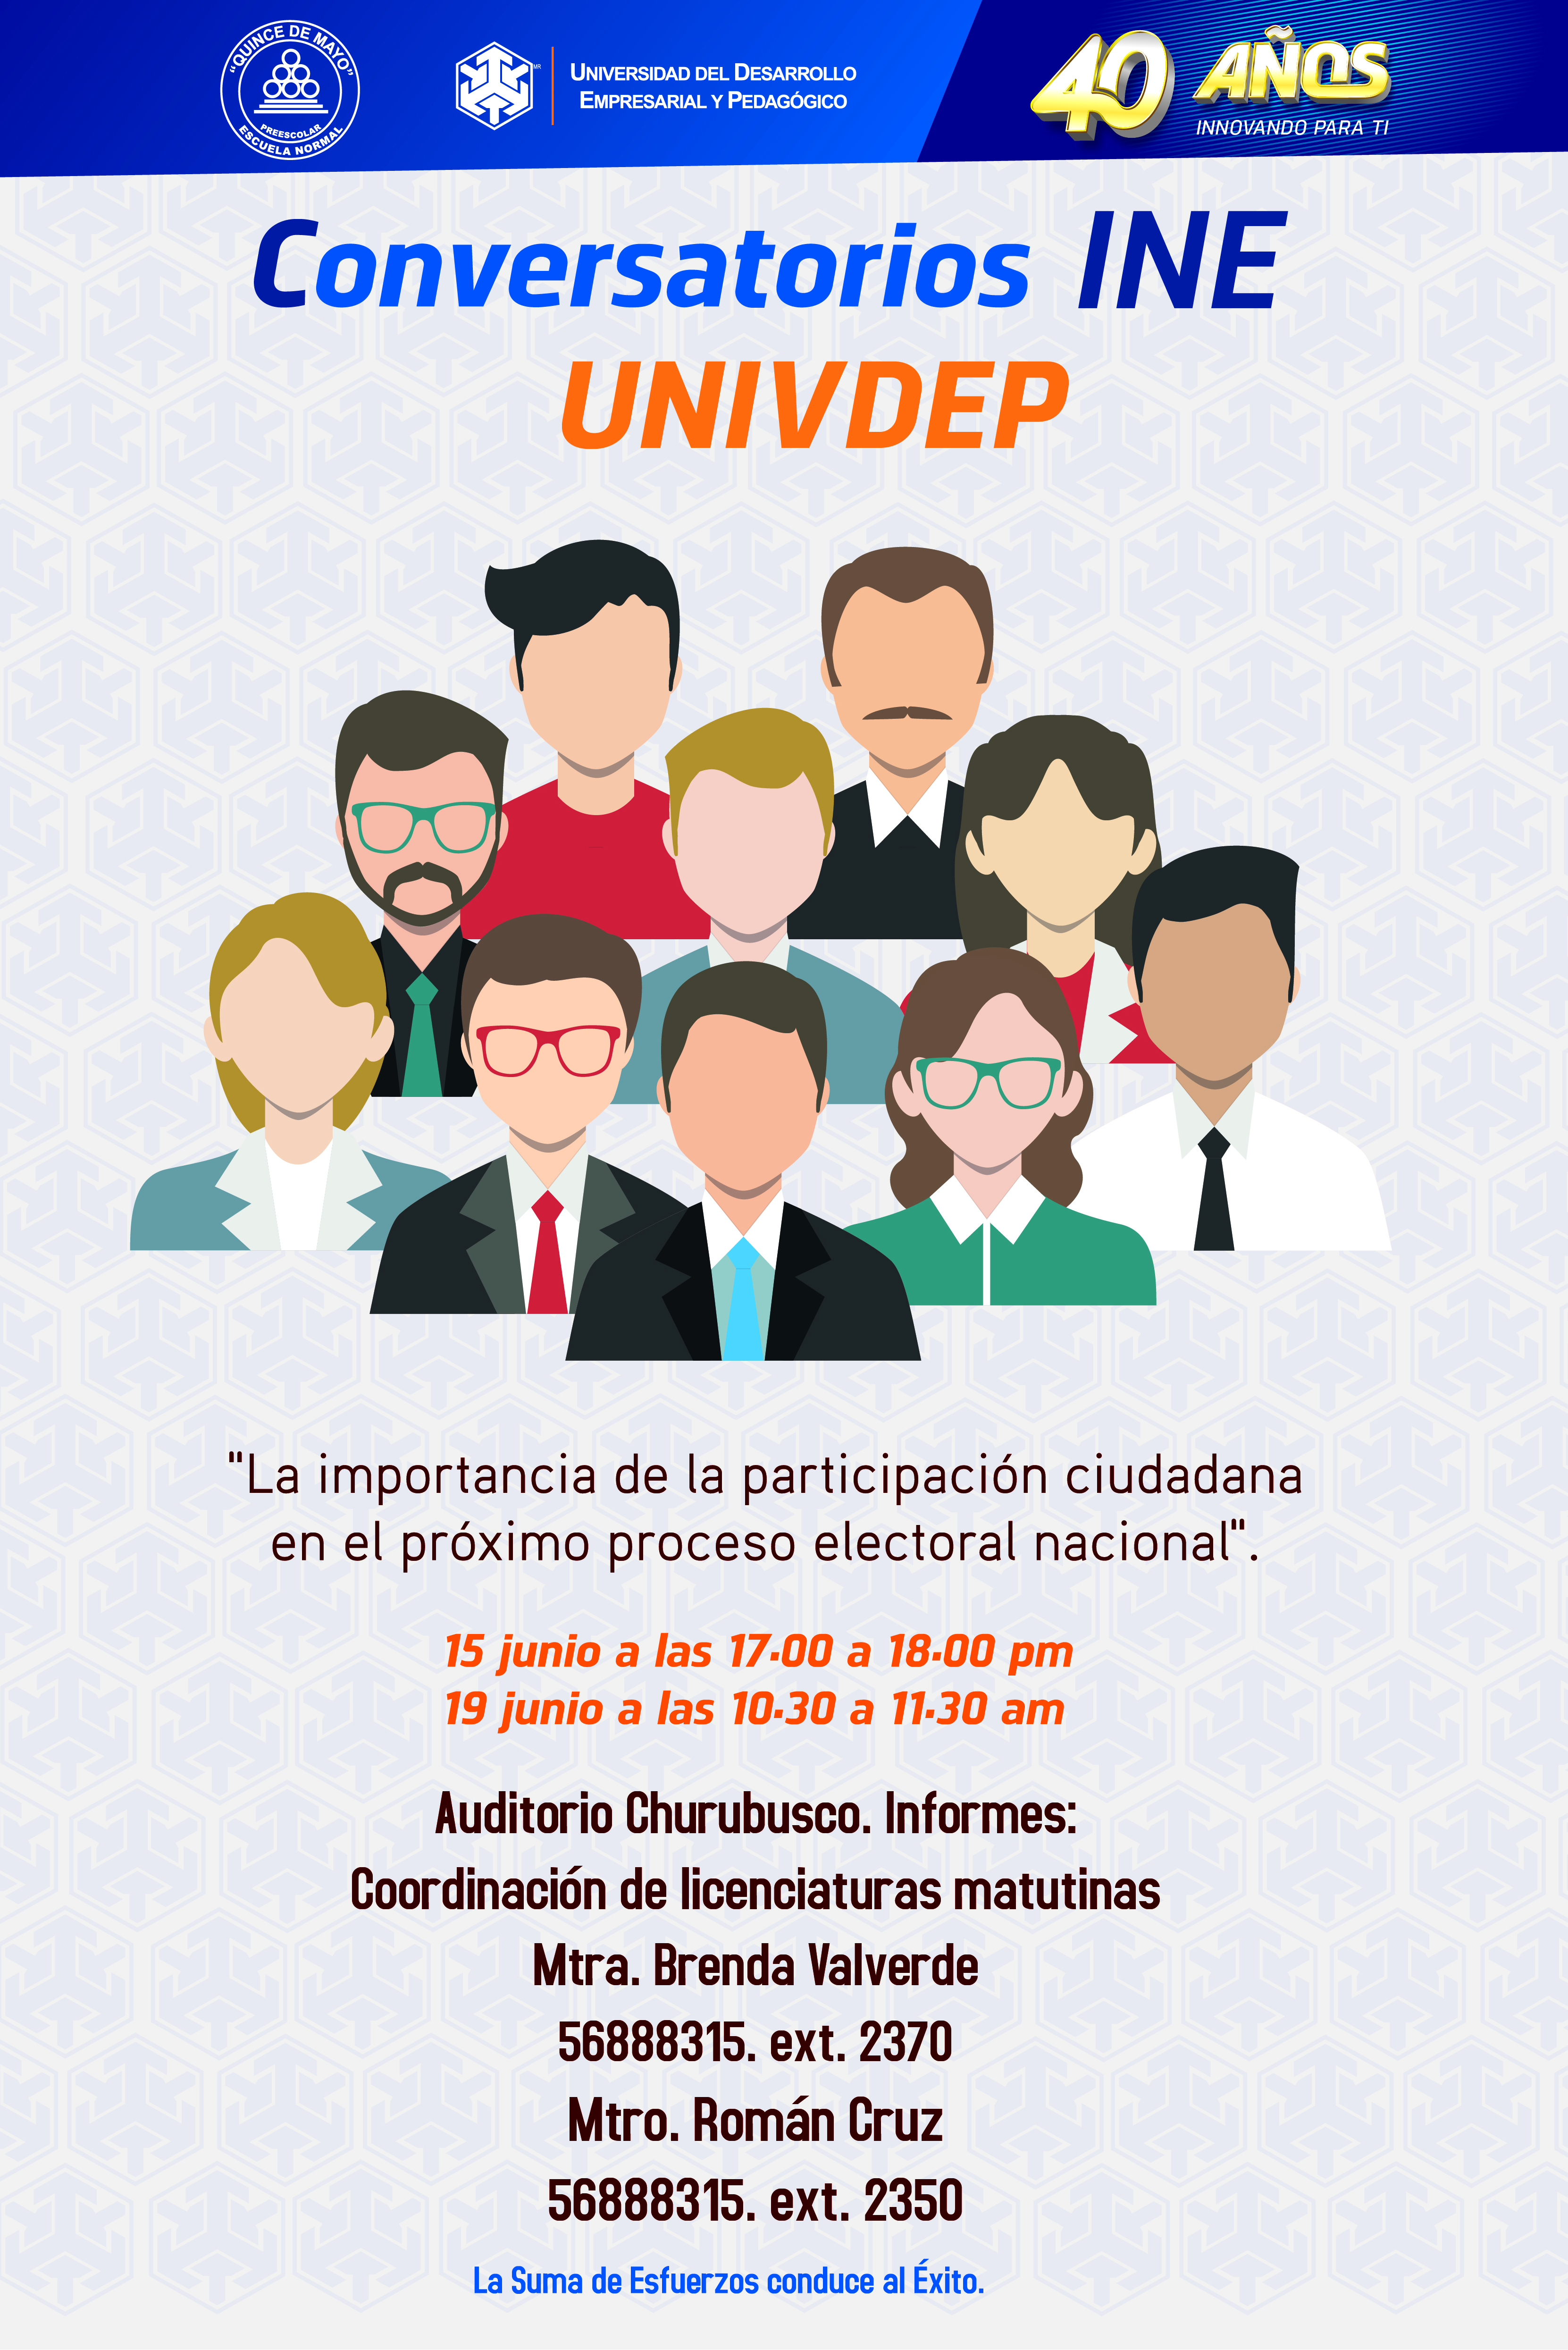 univdep valle Churubusco